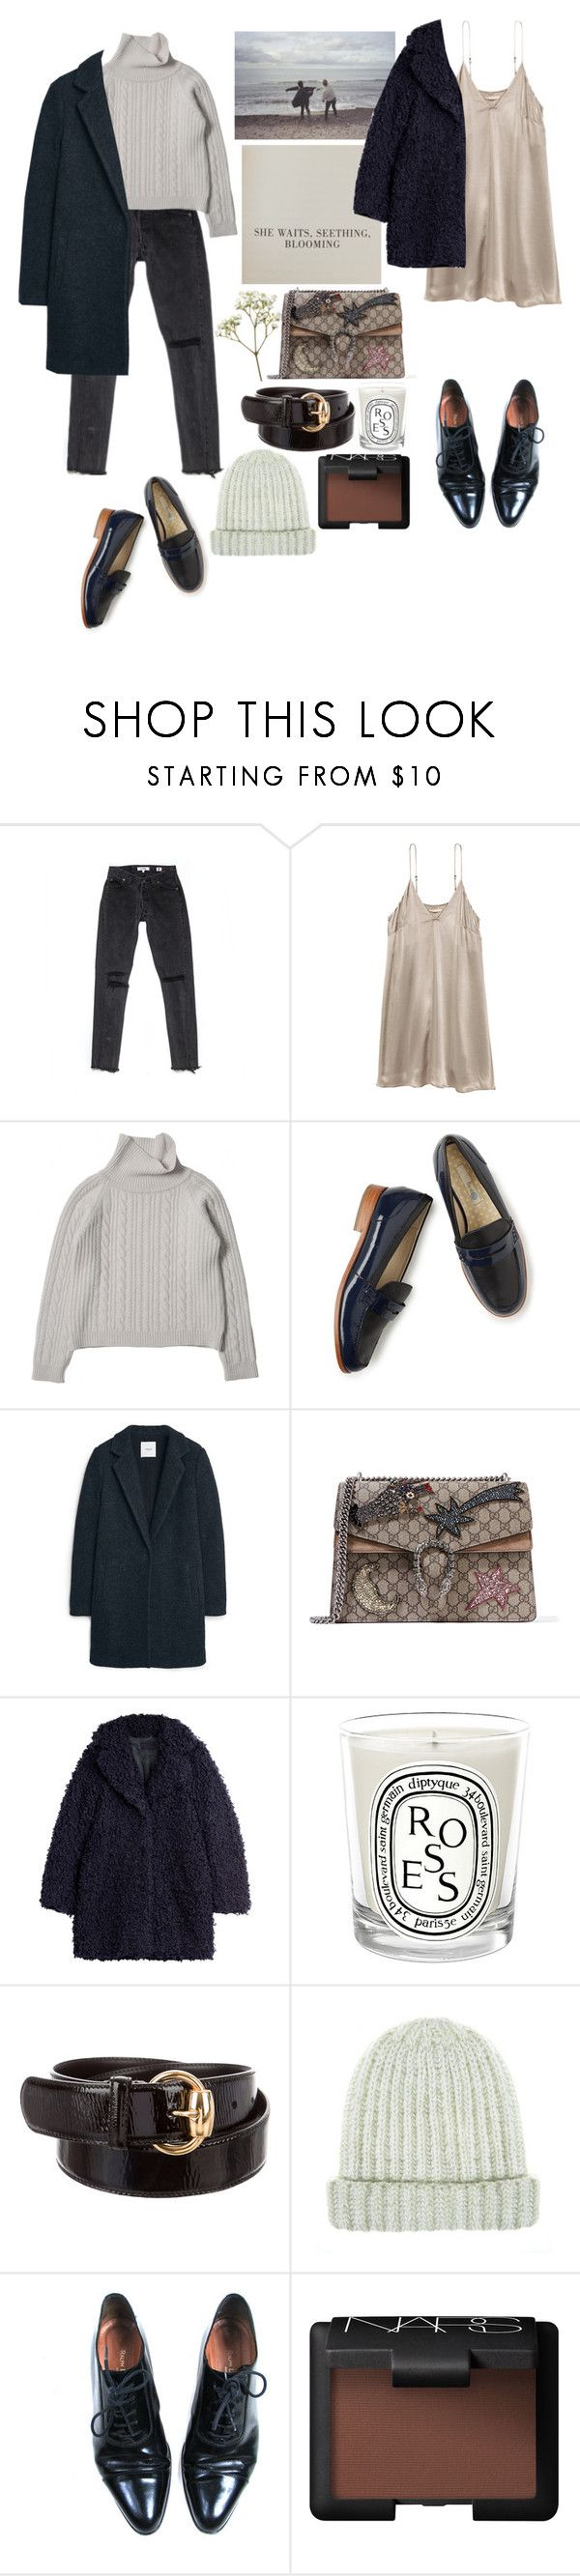 """""""she waits."""" by rsussher ❤ liked on Polyvore featuring Boden, MANGO, Gucci, Zadig & Voltaire, Diptyque, Ralph Lauren Black Label and NARS Cosmetics"""